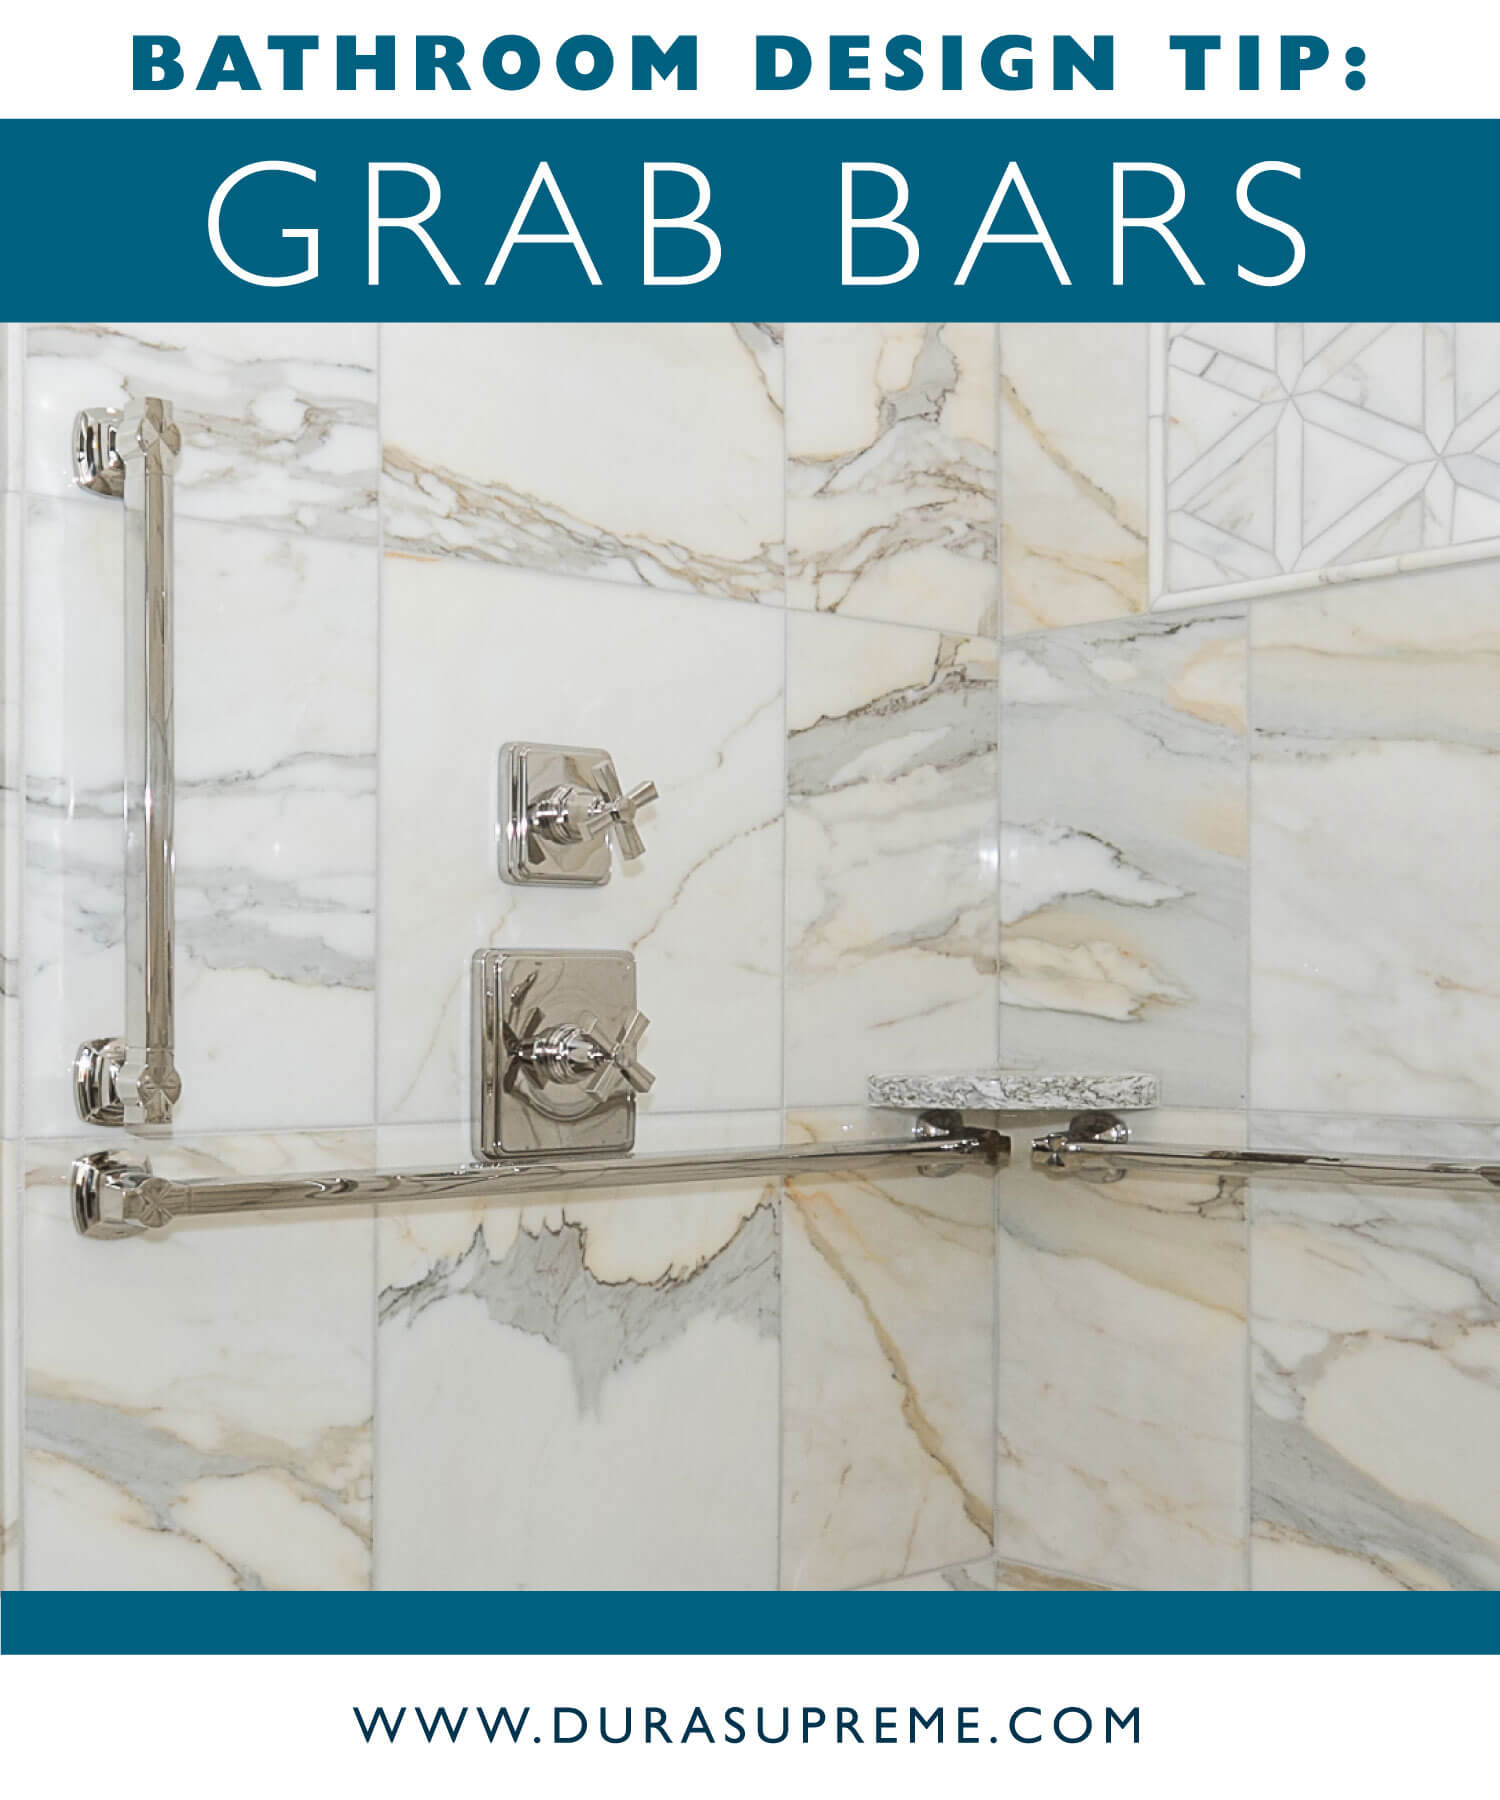 Bathroom Design Tips and Rules for Accessible Grab Bars in the Shower. Image showing the NKBA Grab Bar guideline. Design by Pinnacle Design. Photo by Dan Denardo.